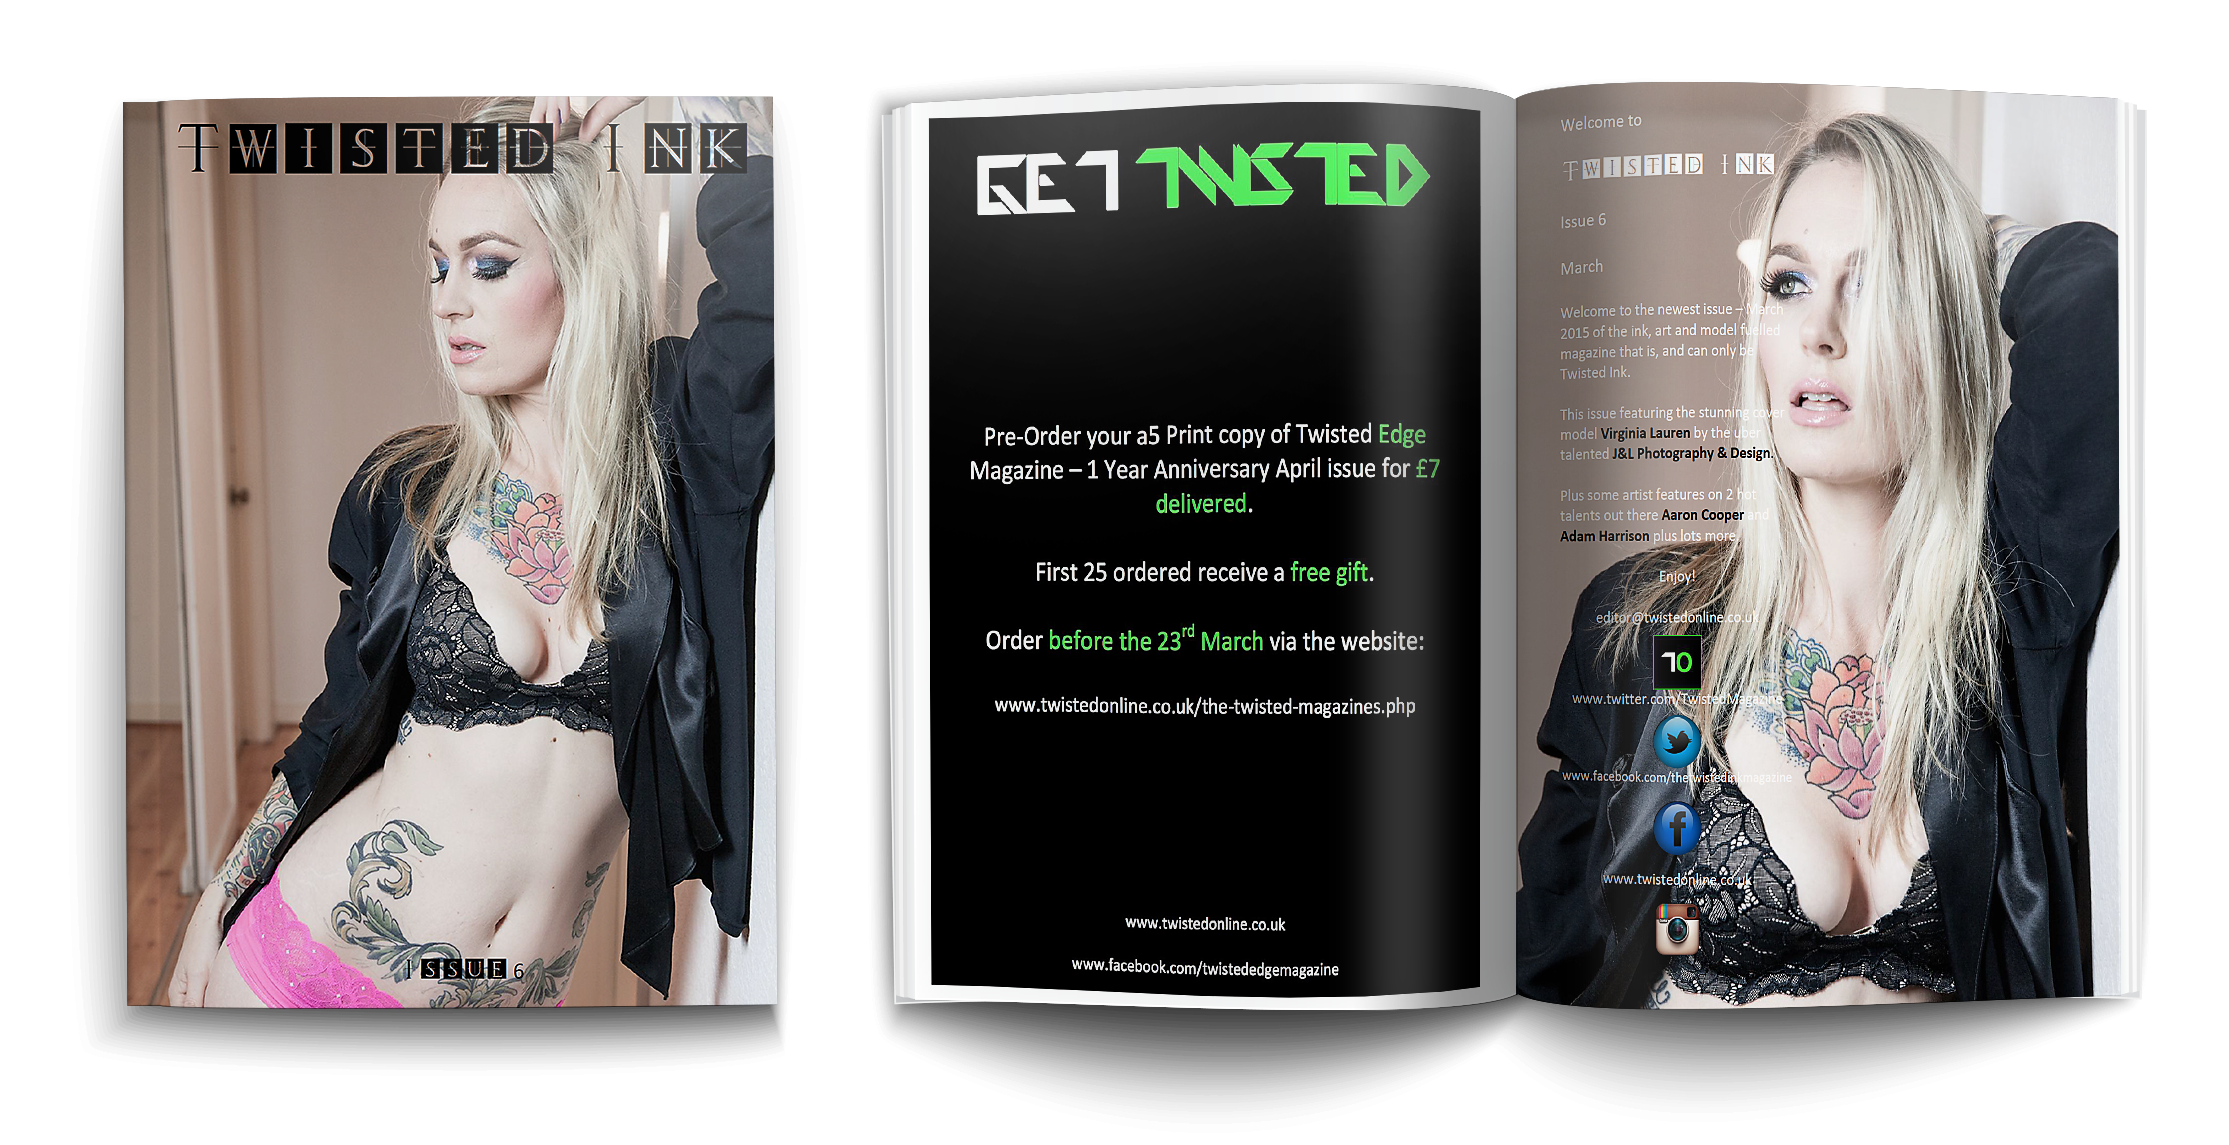 Twisted_Edge_Magazines_Twisted_Ink_issue6_Render1.png